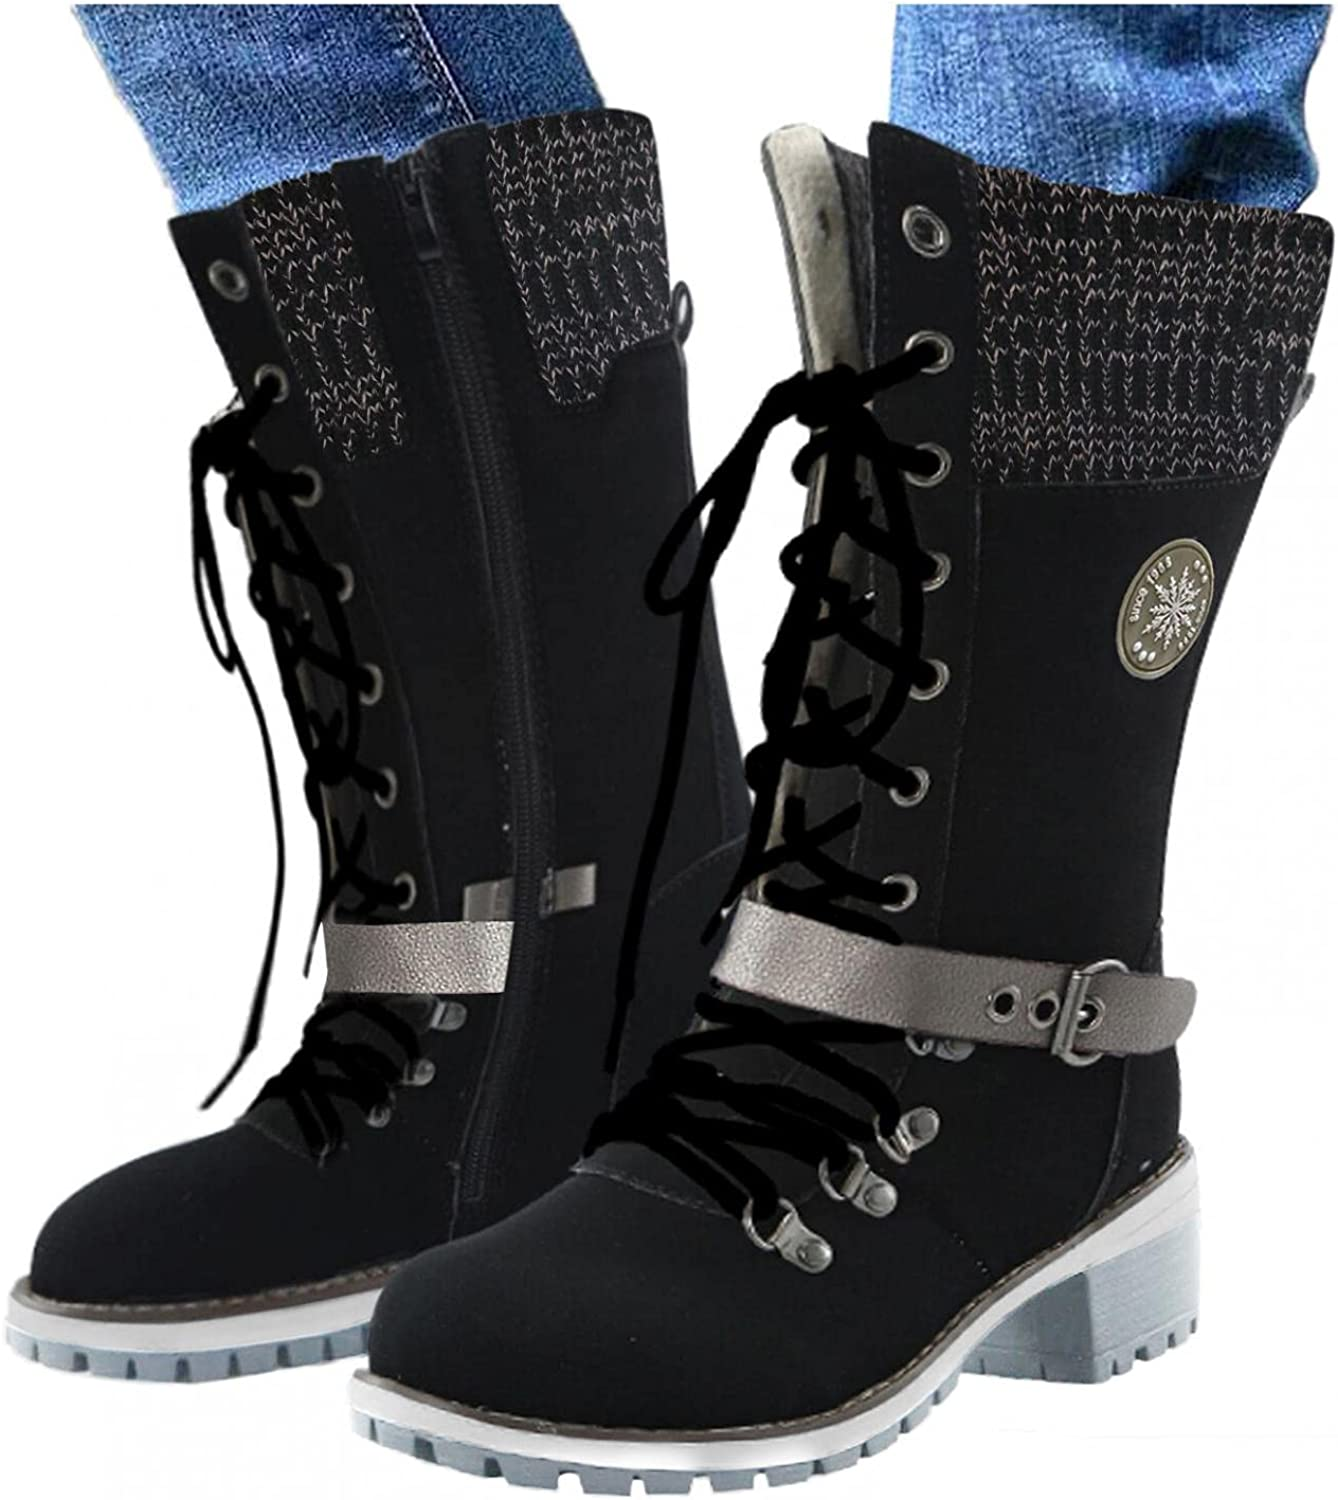 NLOMOCT Boots for Women,Round Toe Buckle Strap Mid Calf Boots Casual Winter Warm Snow Boots Platform Boots Ankle Booties